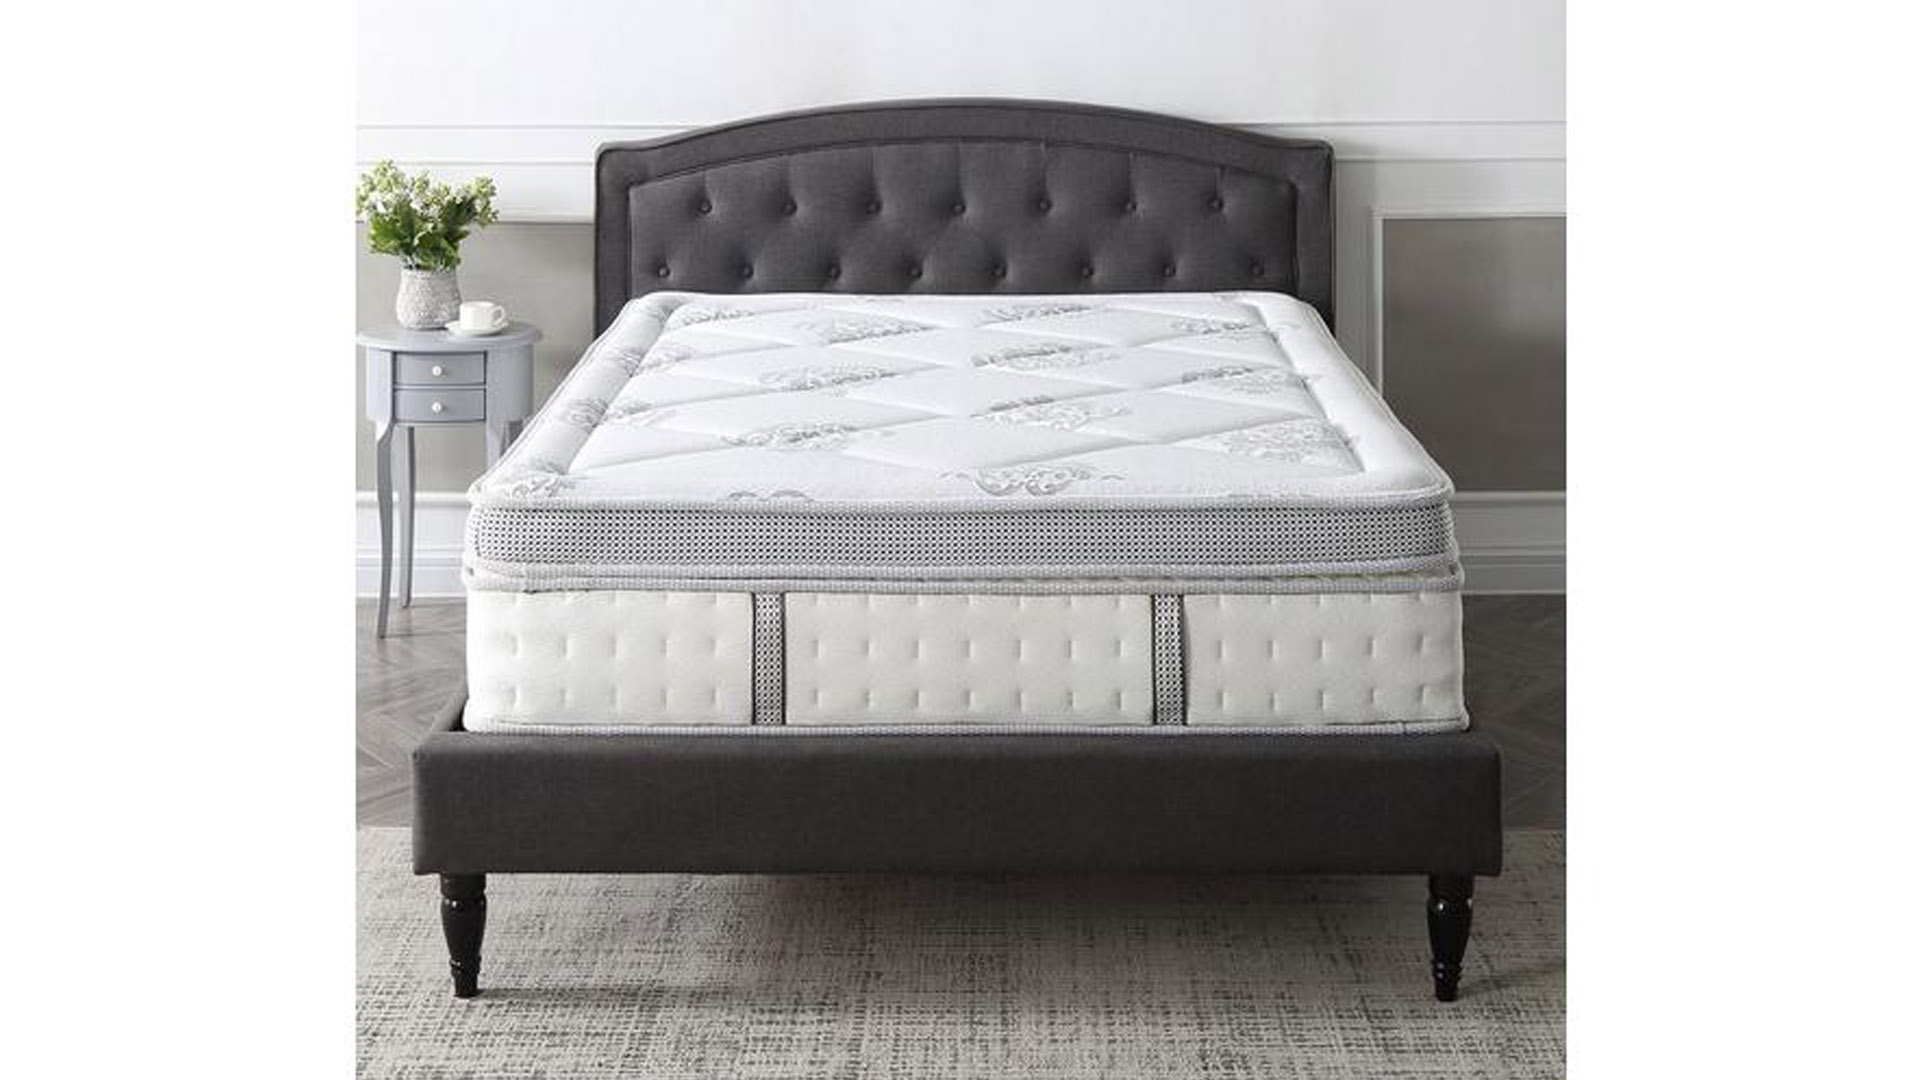 Quality Is One Of The 5 Tips To Get The Perfect Mattress on Mattress Firm